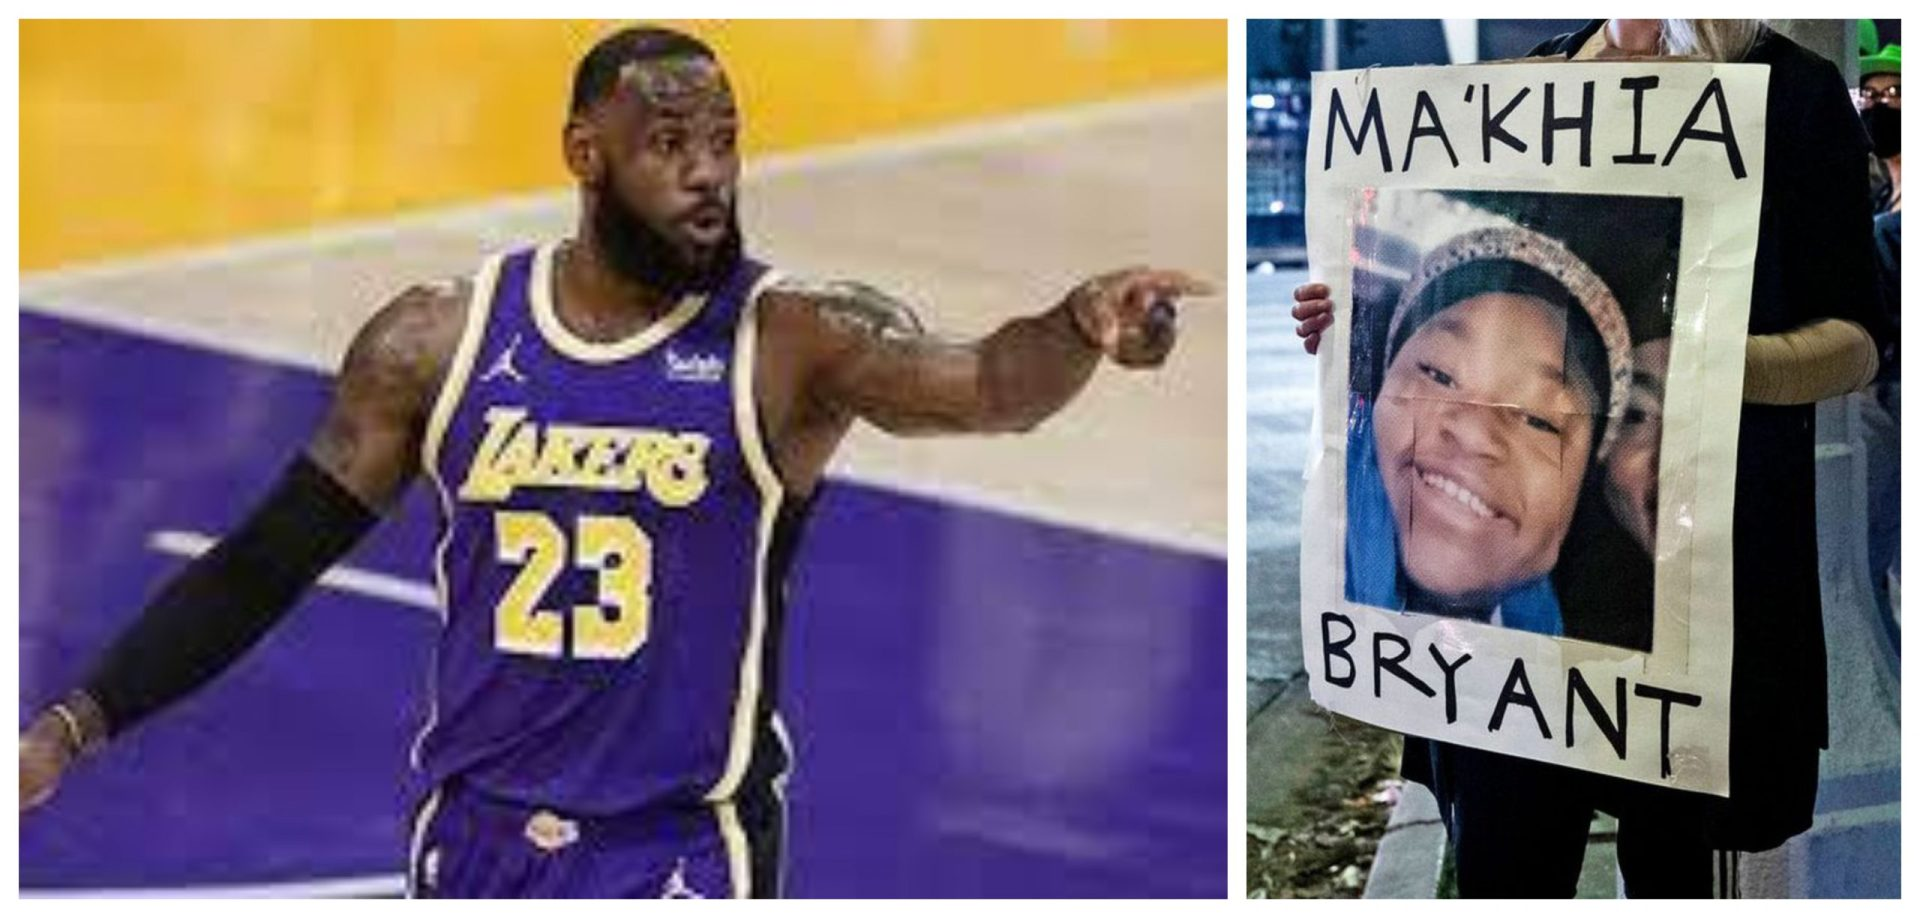 LeBron James provides an explanation on why he deleted the tweet on Ma'Khia Bryant's death - THE SPORTS ROOM